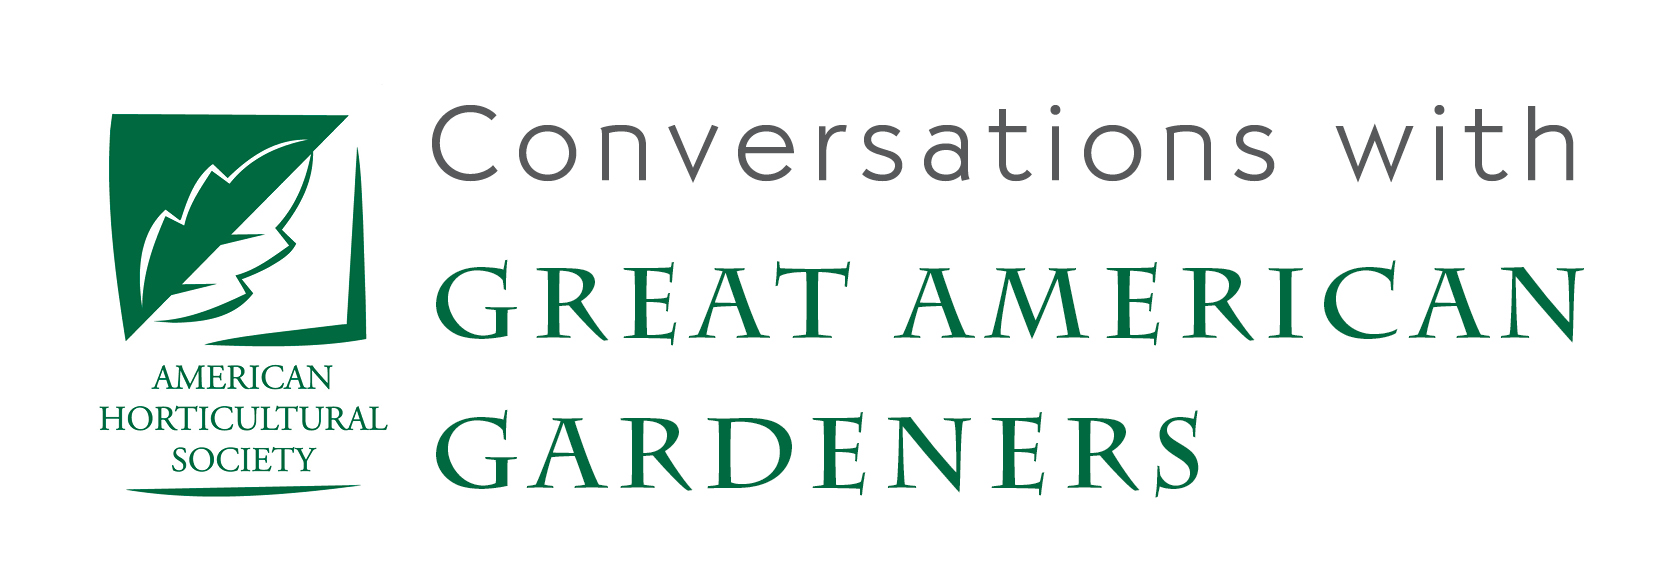 Conversations with Great American Gardeners